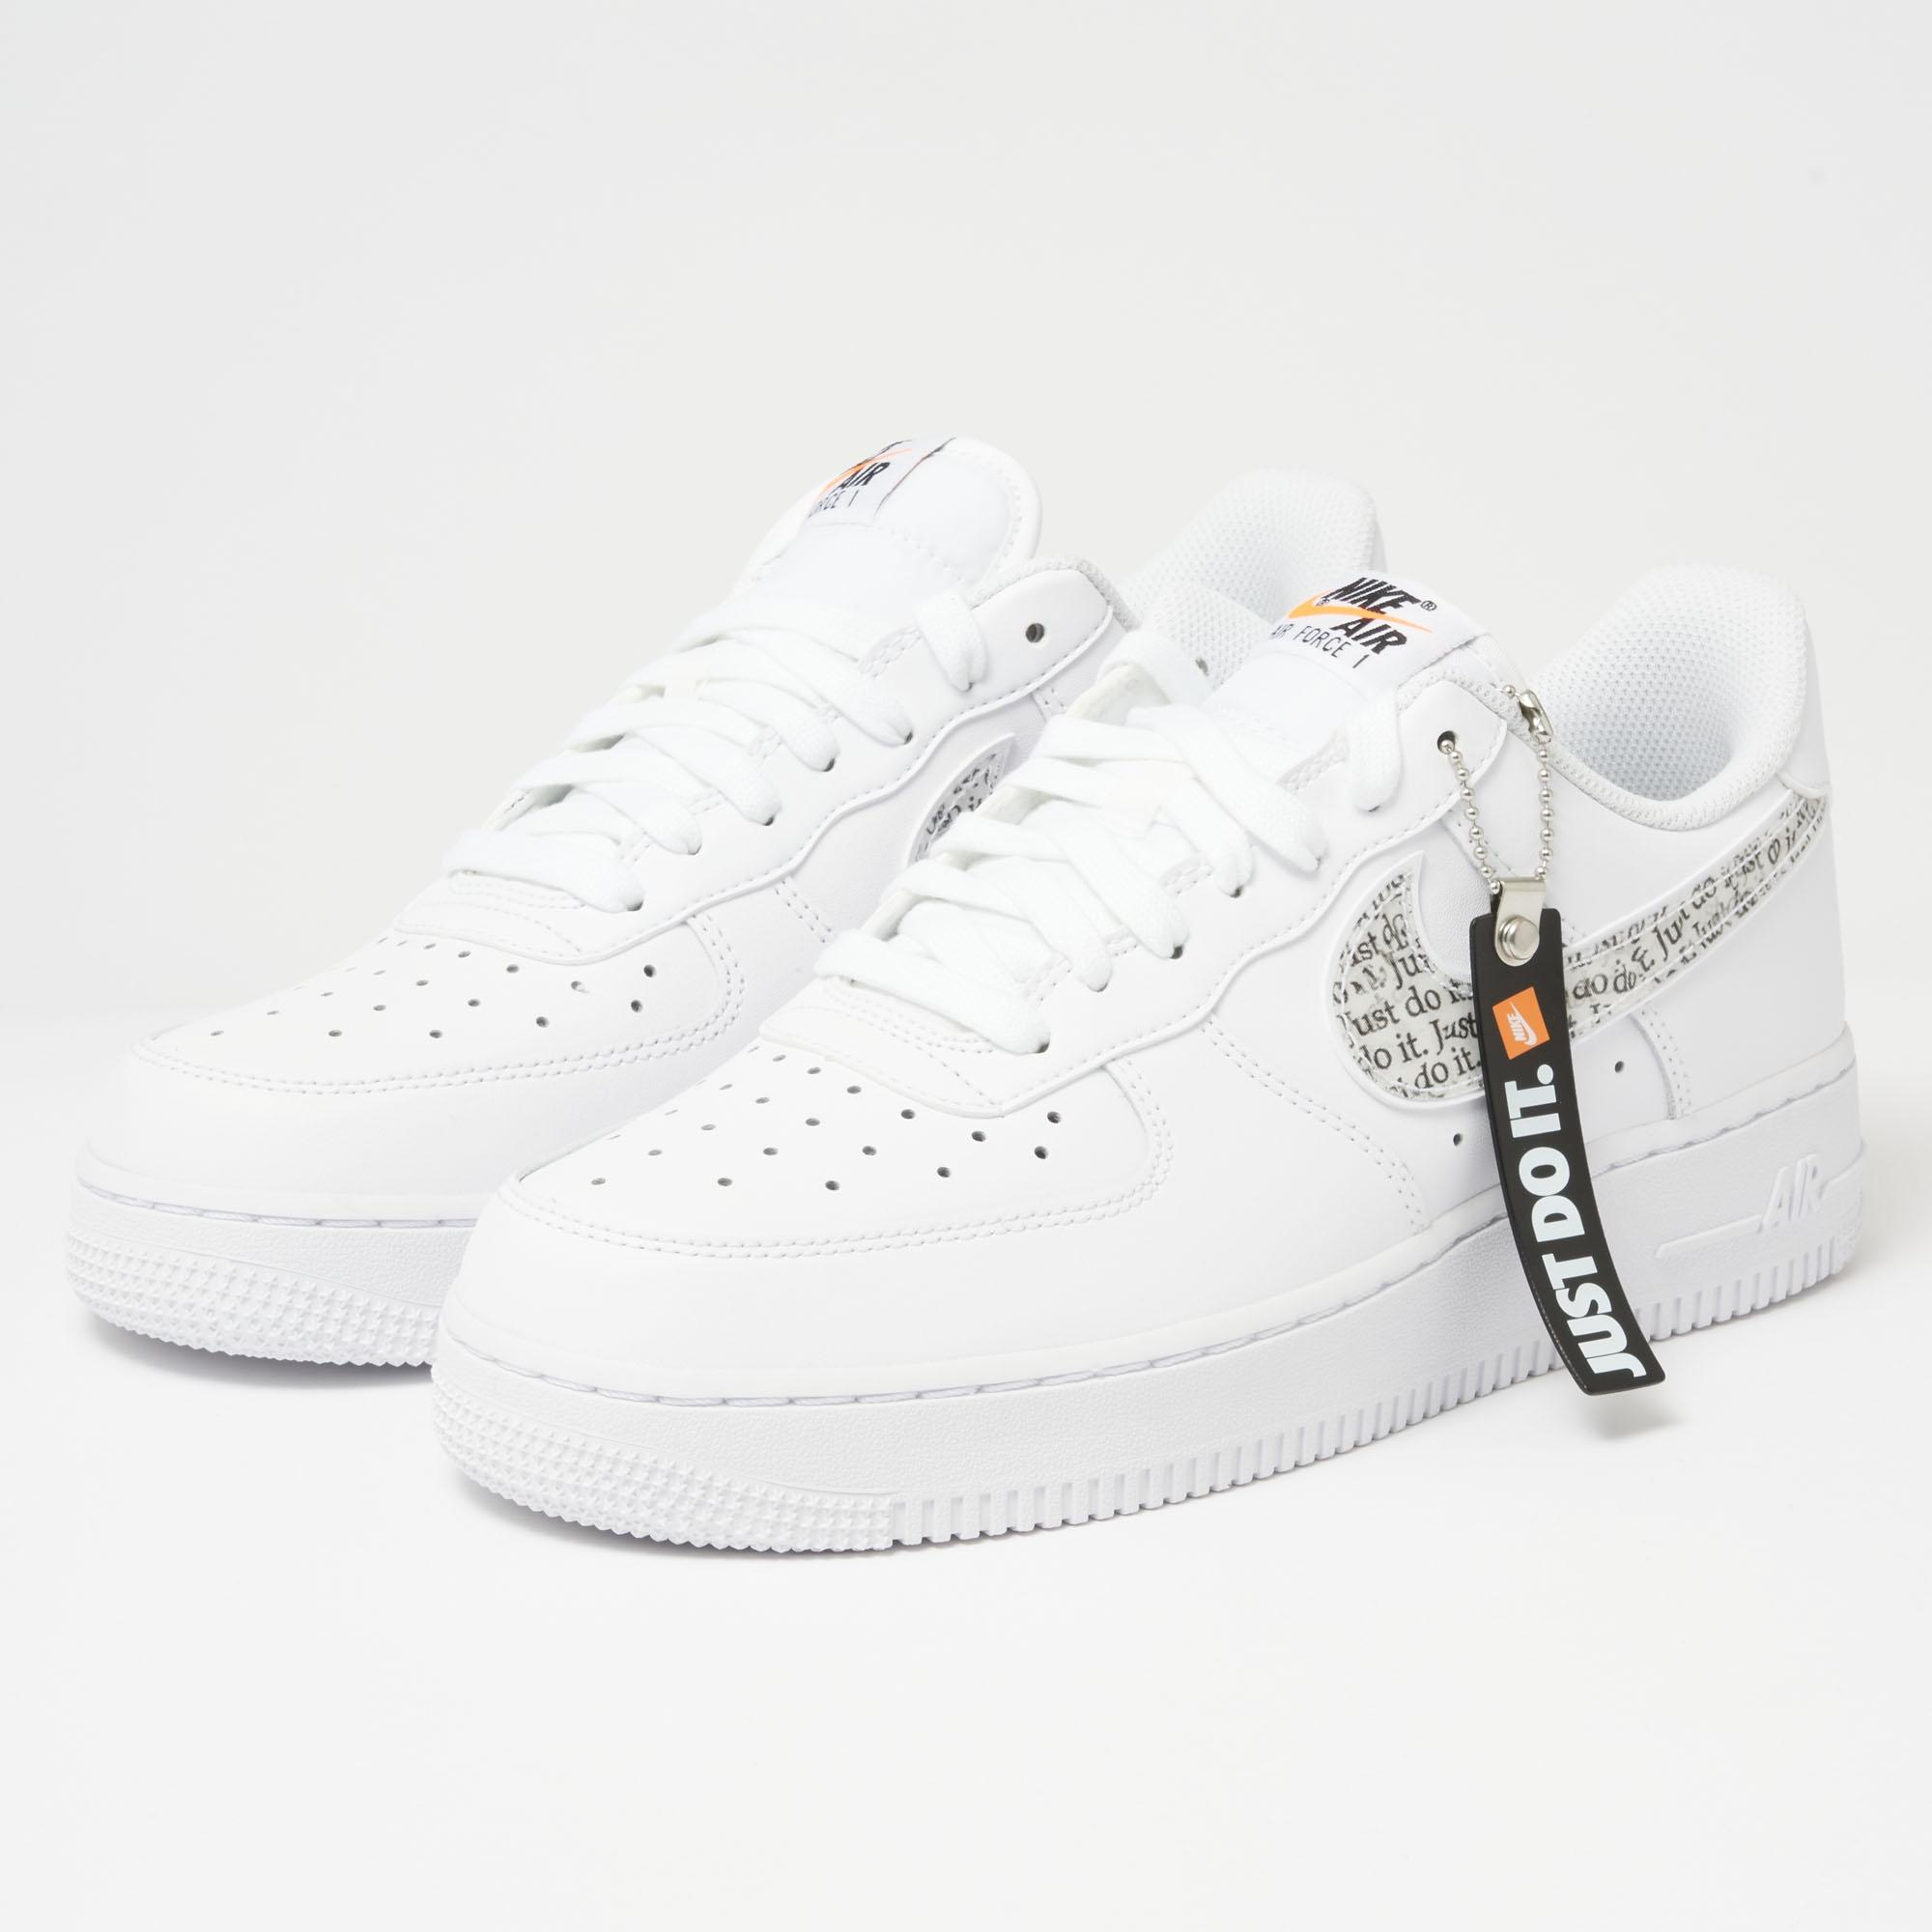 online retailer 7cd56 8a217 Nike Air Force 1  07 Lv8  just Do It  Lntc - White, Black,total ...